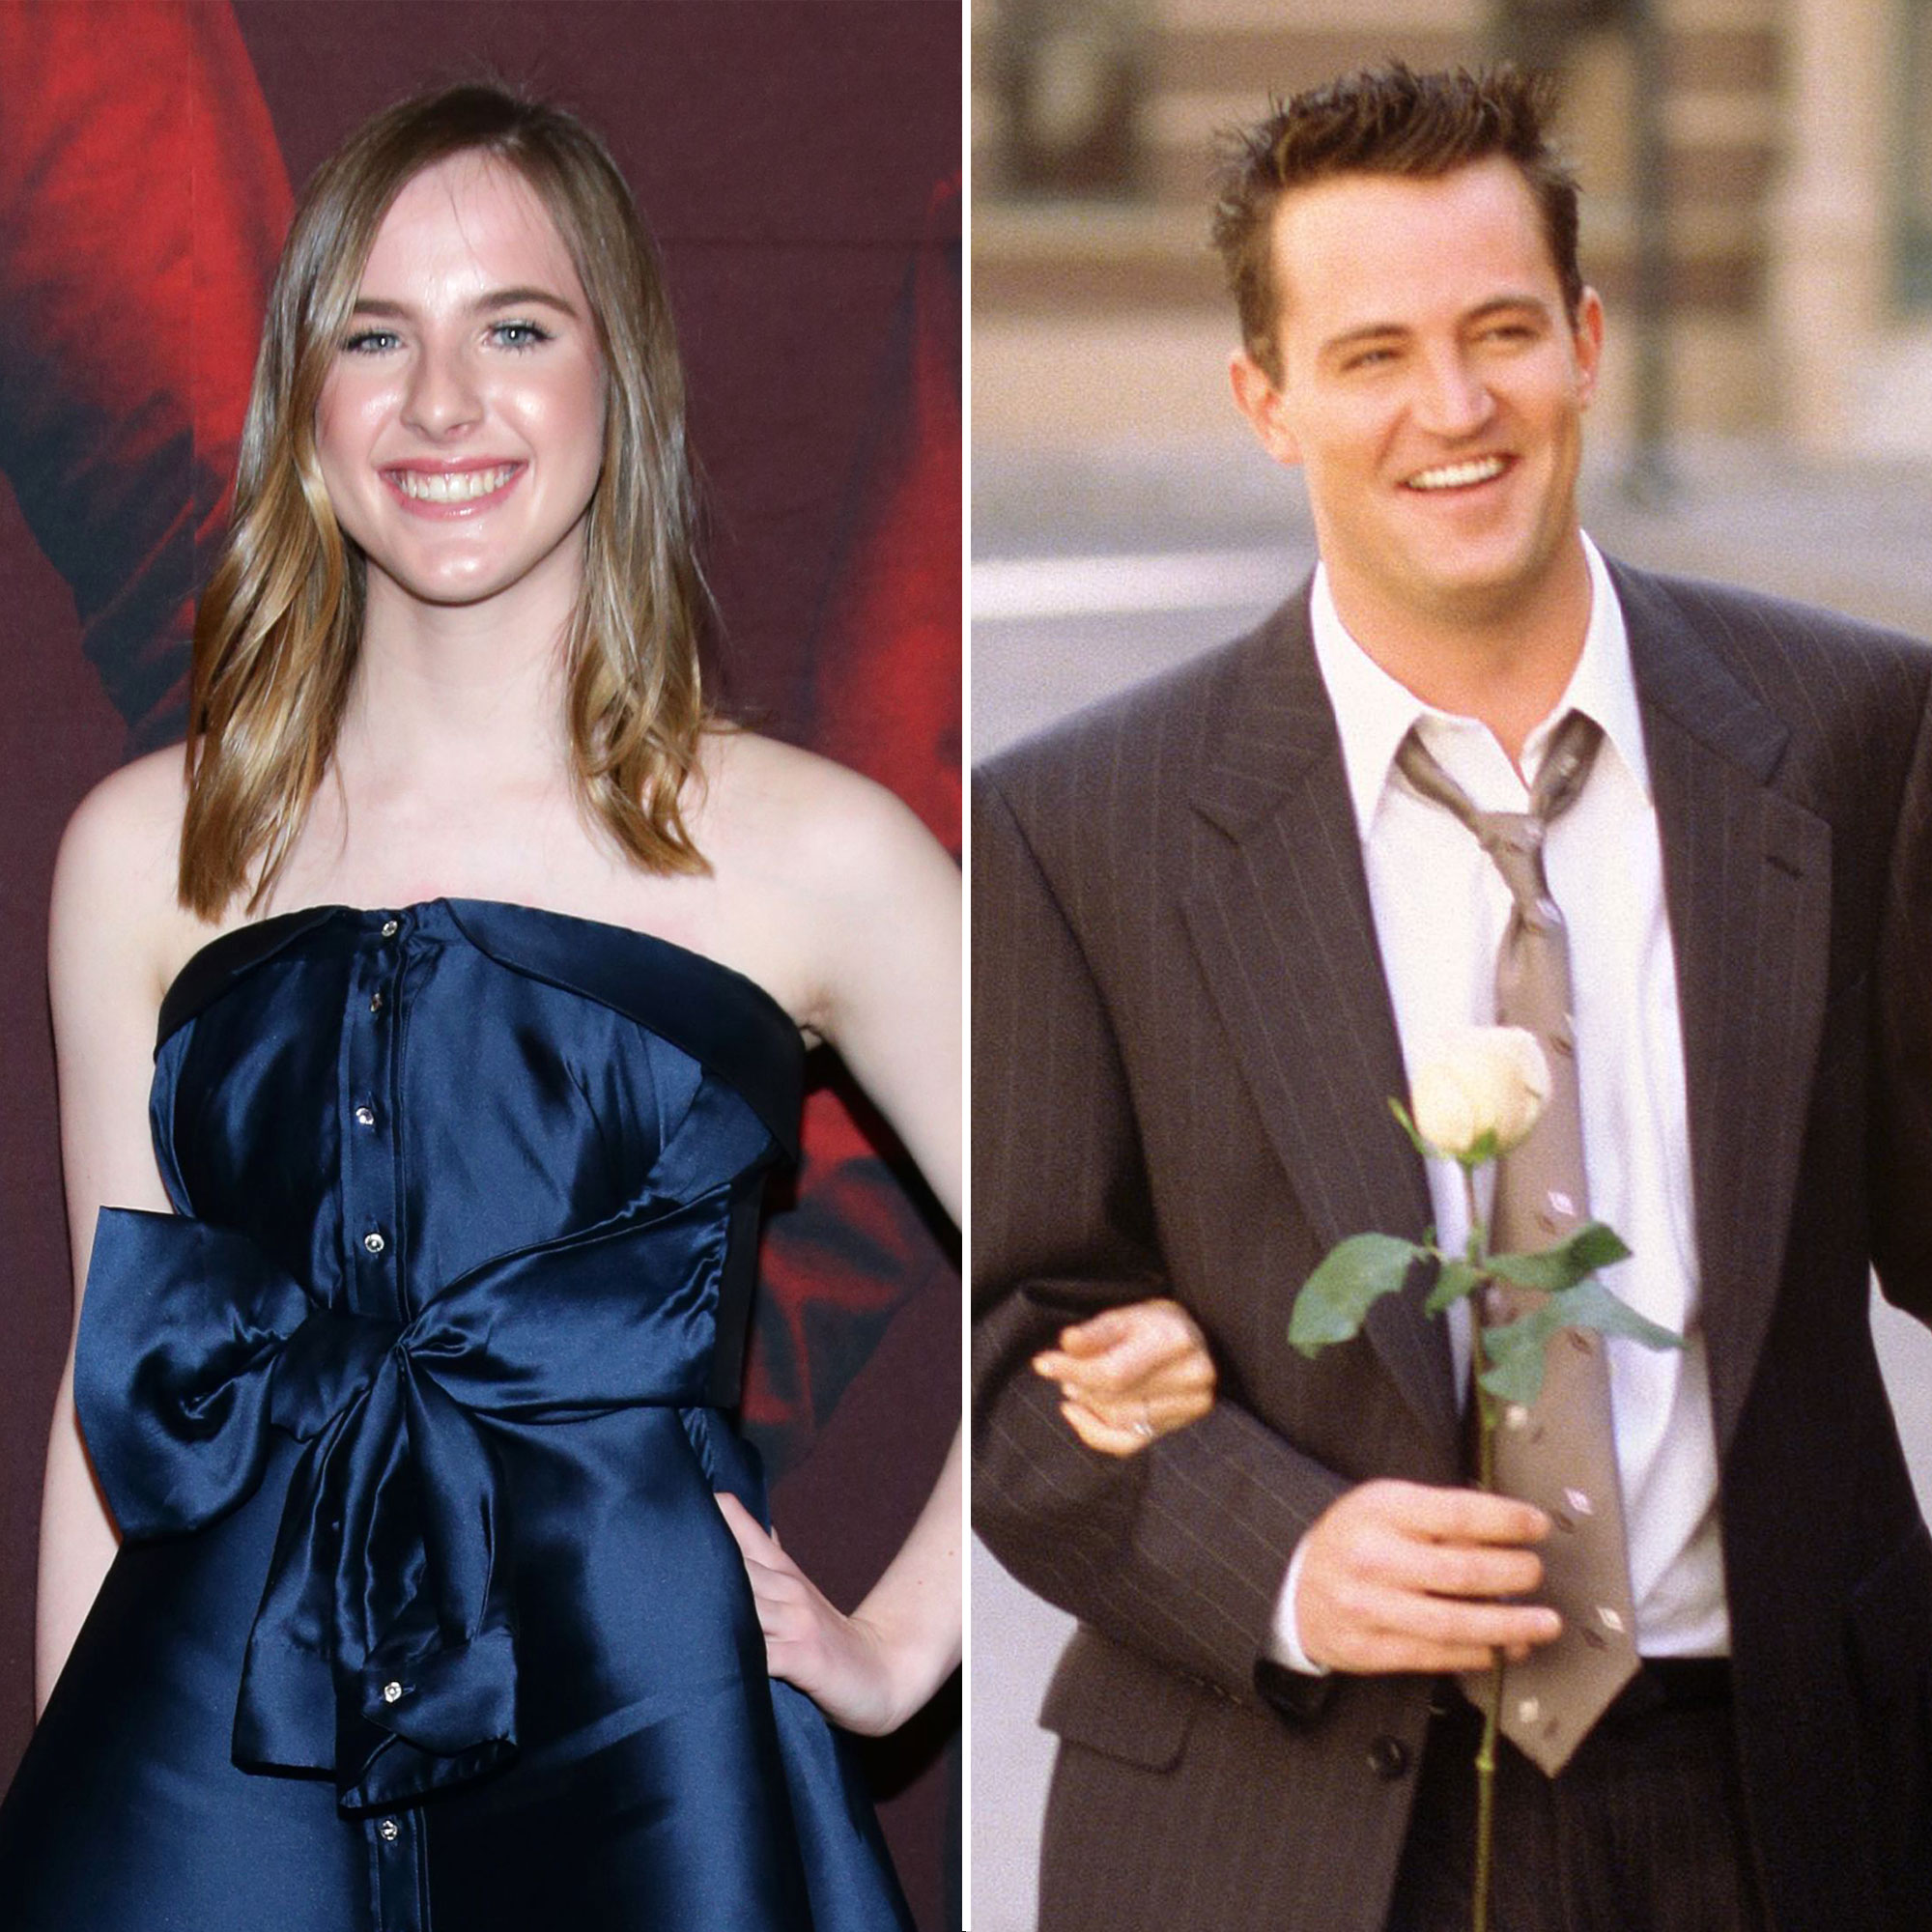 Friends Actress Who Played Emma Responds To Chandler S 2020 Joke